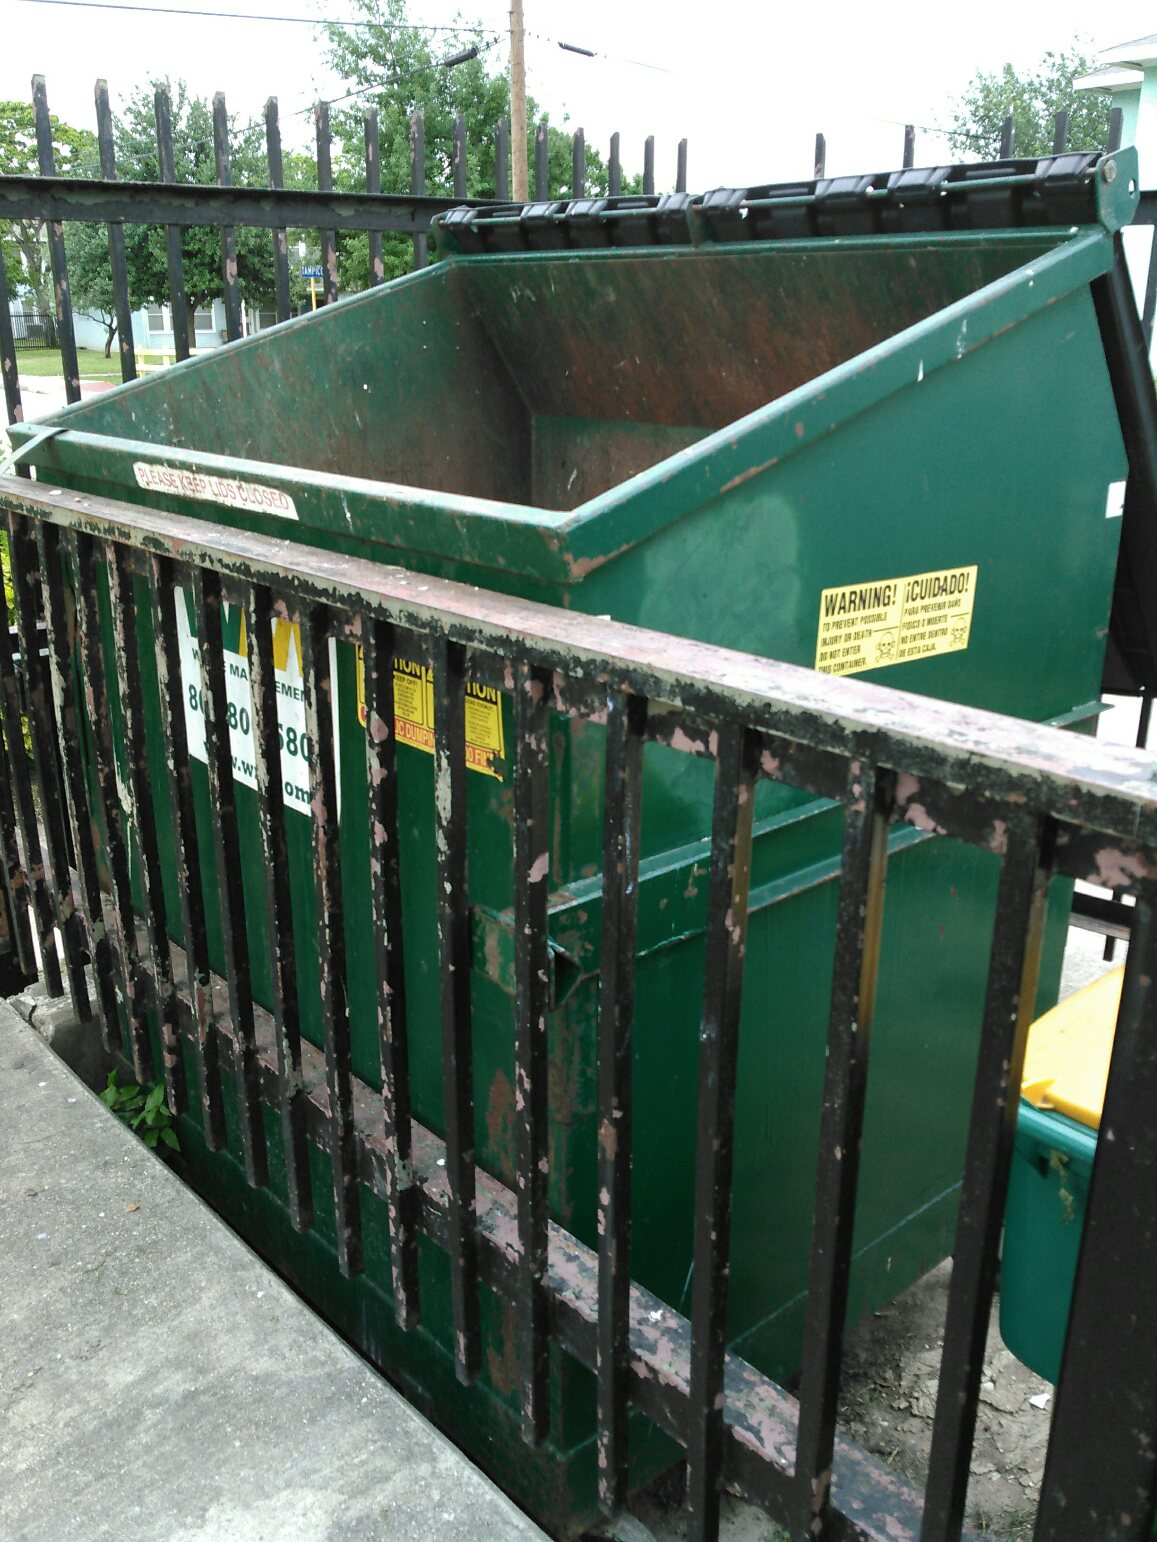 Dumpster Dog Is Rescued With Moments To Spare